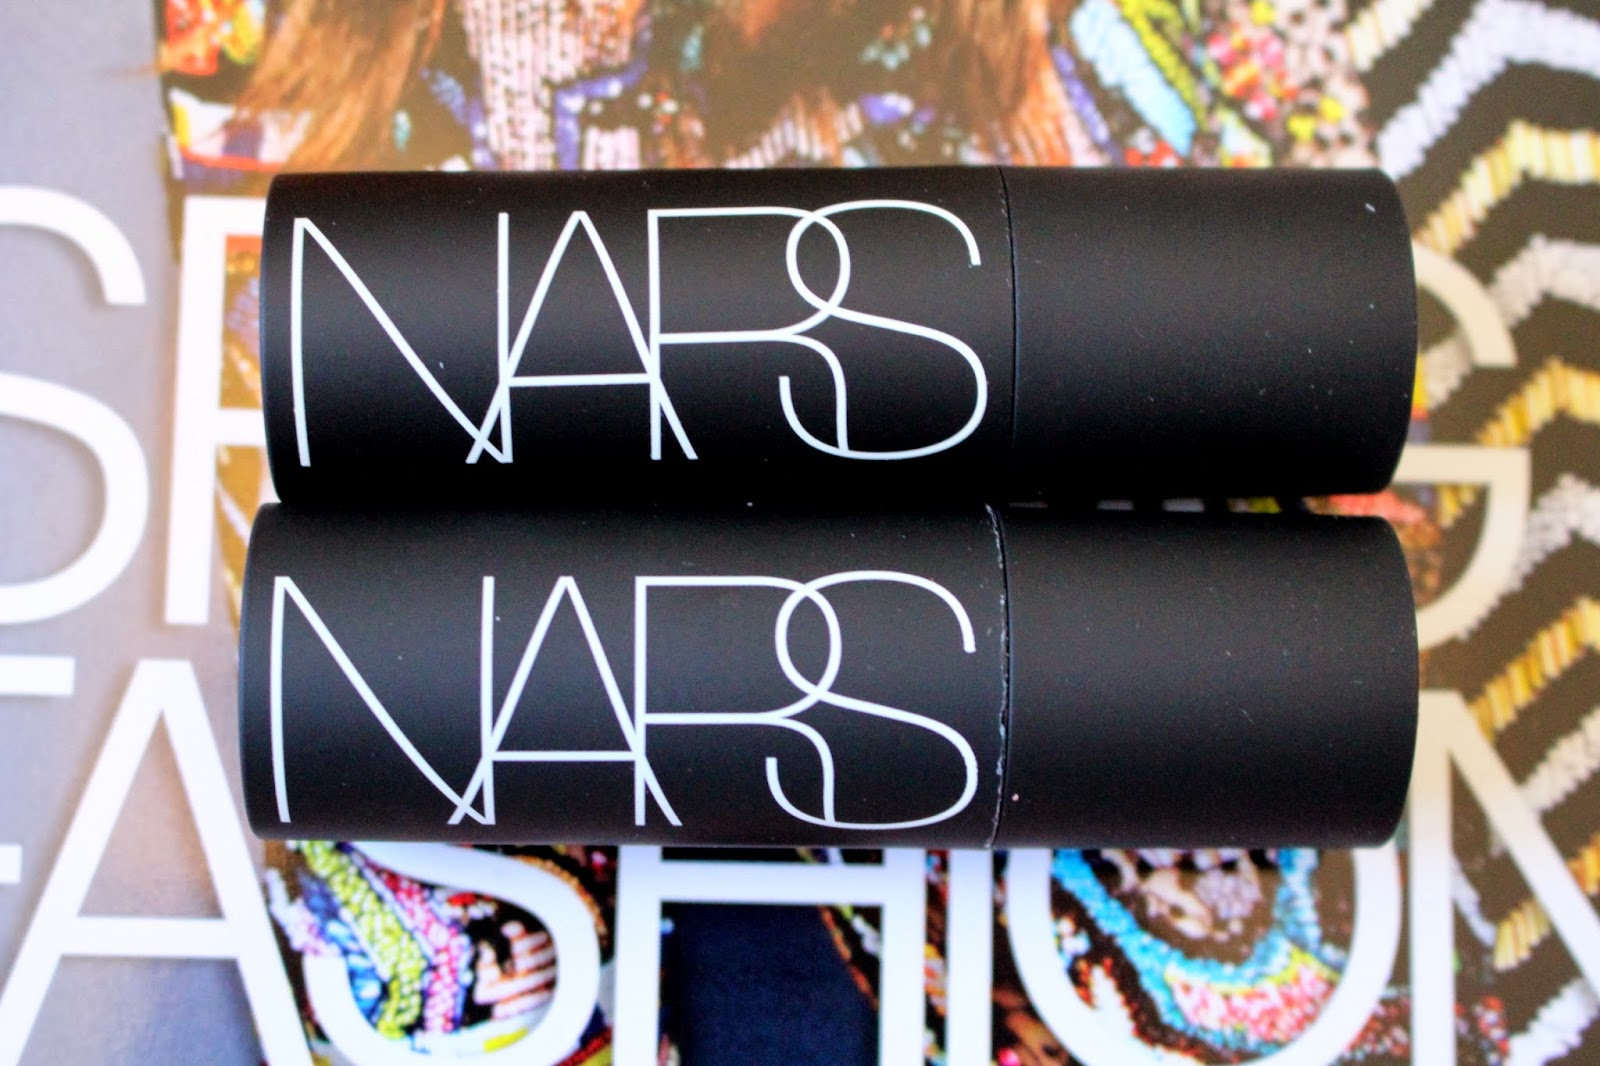 Nars, Nars Matte Multiple, Nars The Multiple, Nars Matte Multiple Altai, Nars Matte Multiple Anguilla, Nars Matte Multiple Review Swatches